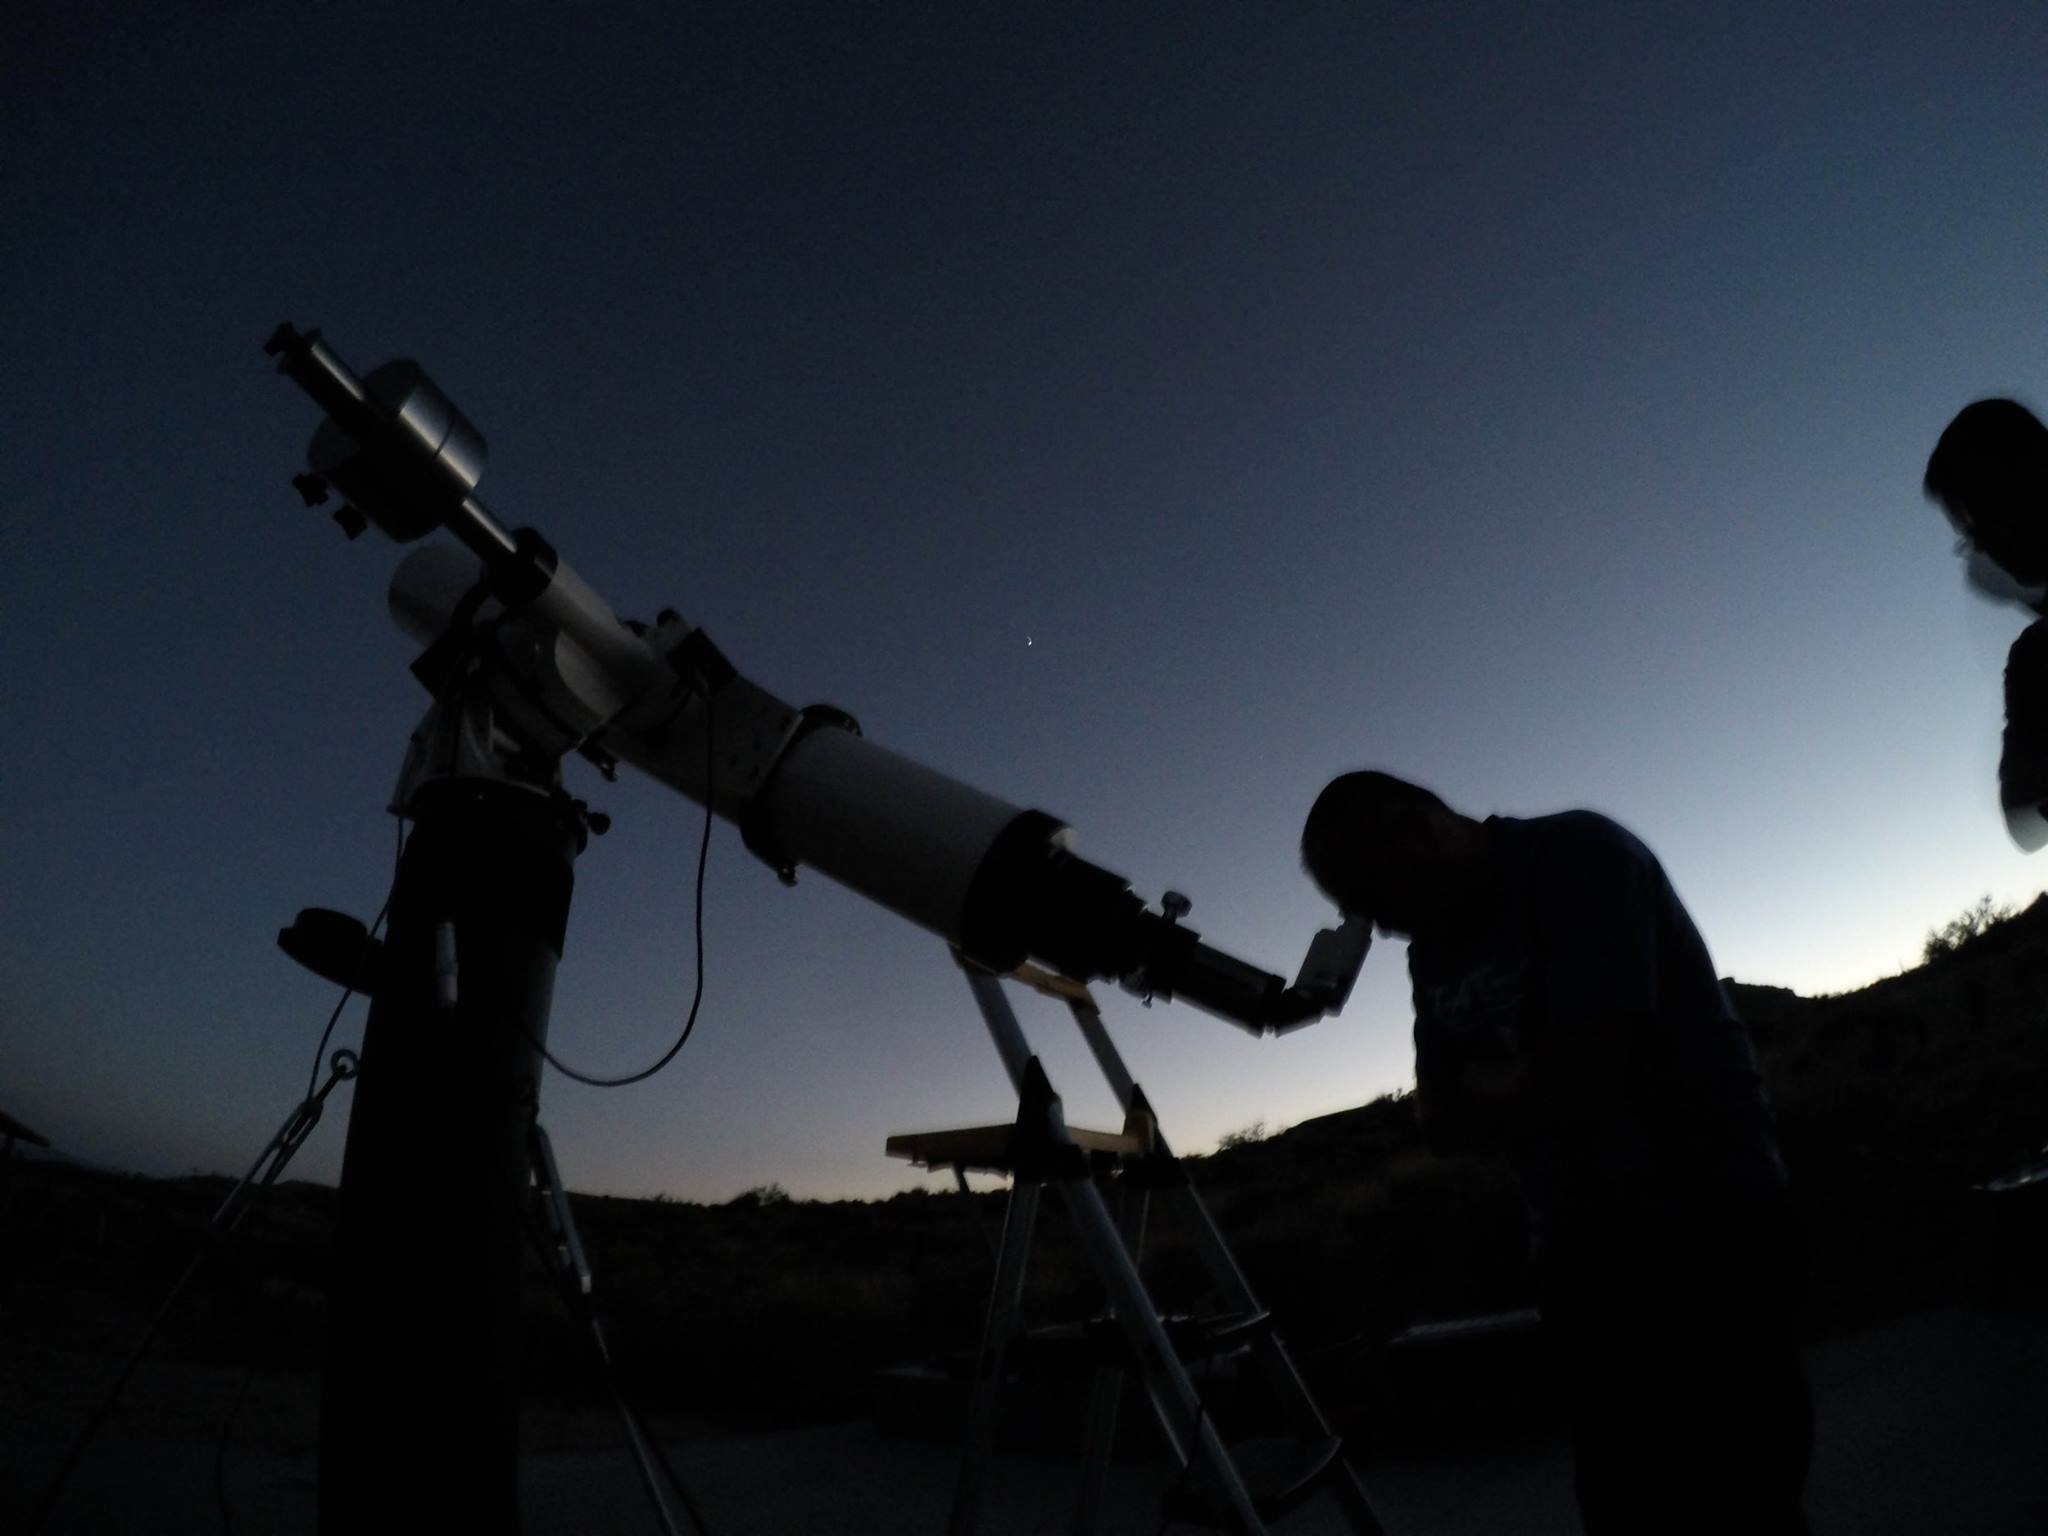 Telescopes set up by the Old Town Astronomers of Pasadena provide a close look at far away planets and galaxies at one of our Star Parties.